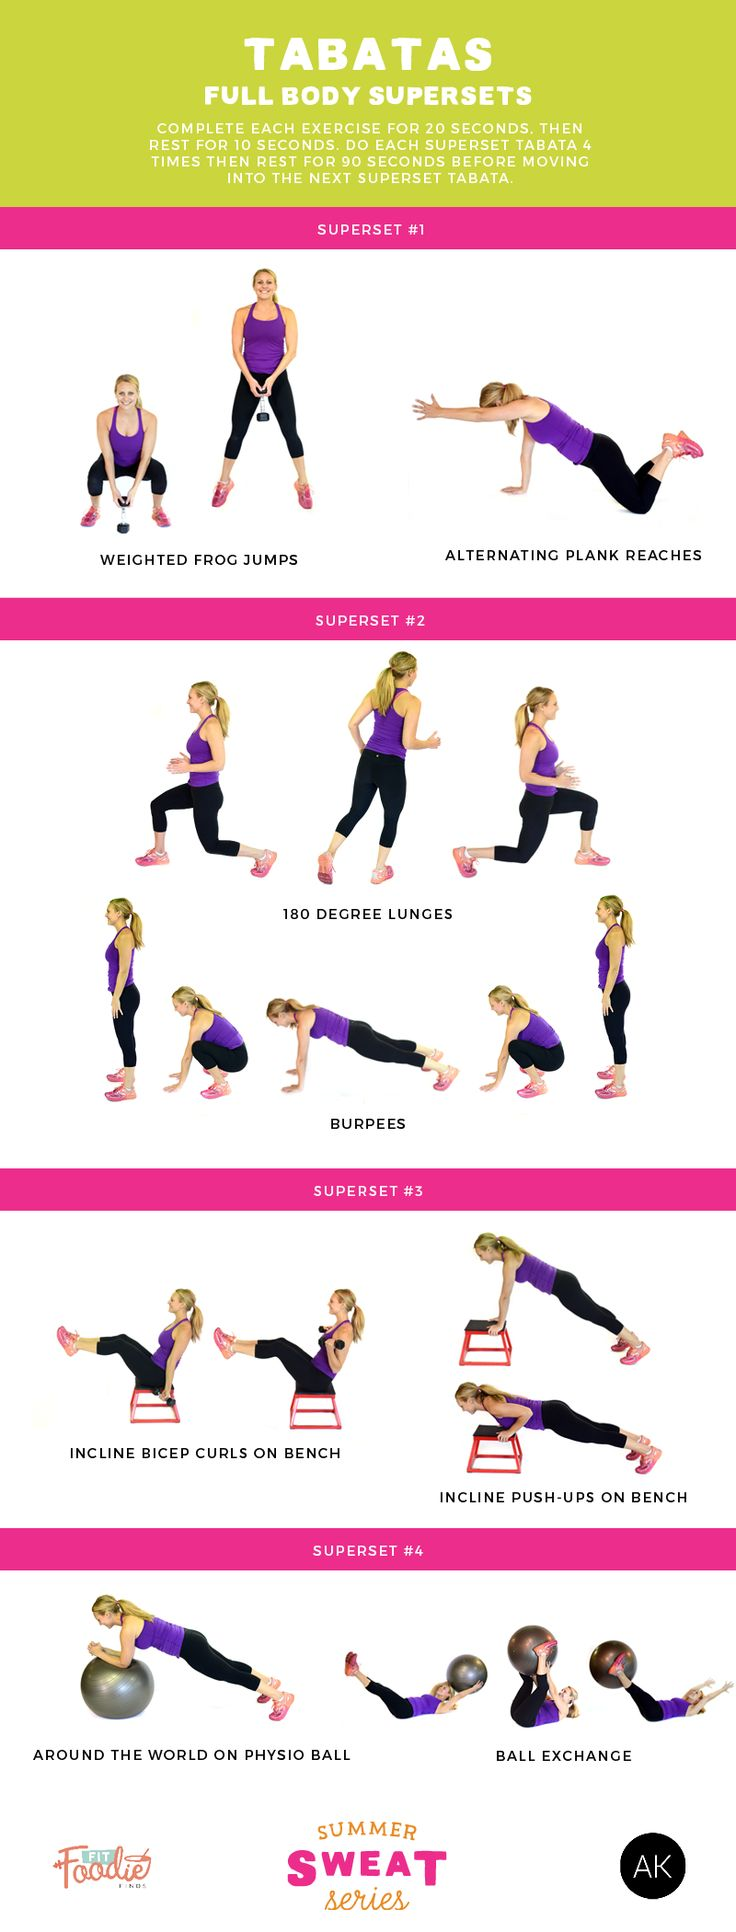 For a quick yet effective fat burning workout, do this full body superset tabata workout! You'll be sweating in no time! #SummerSWEATSeries